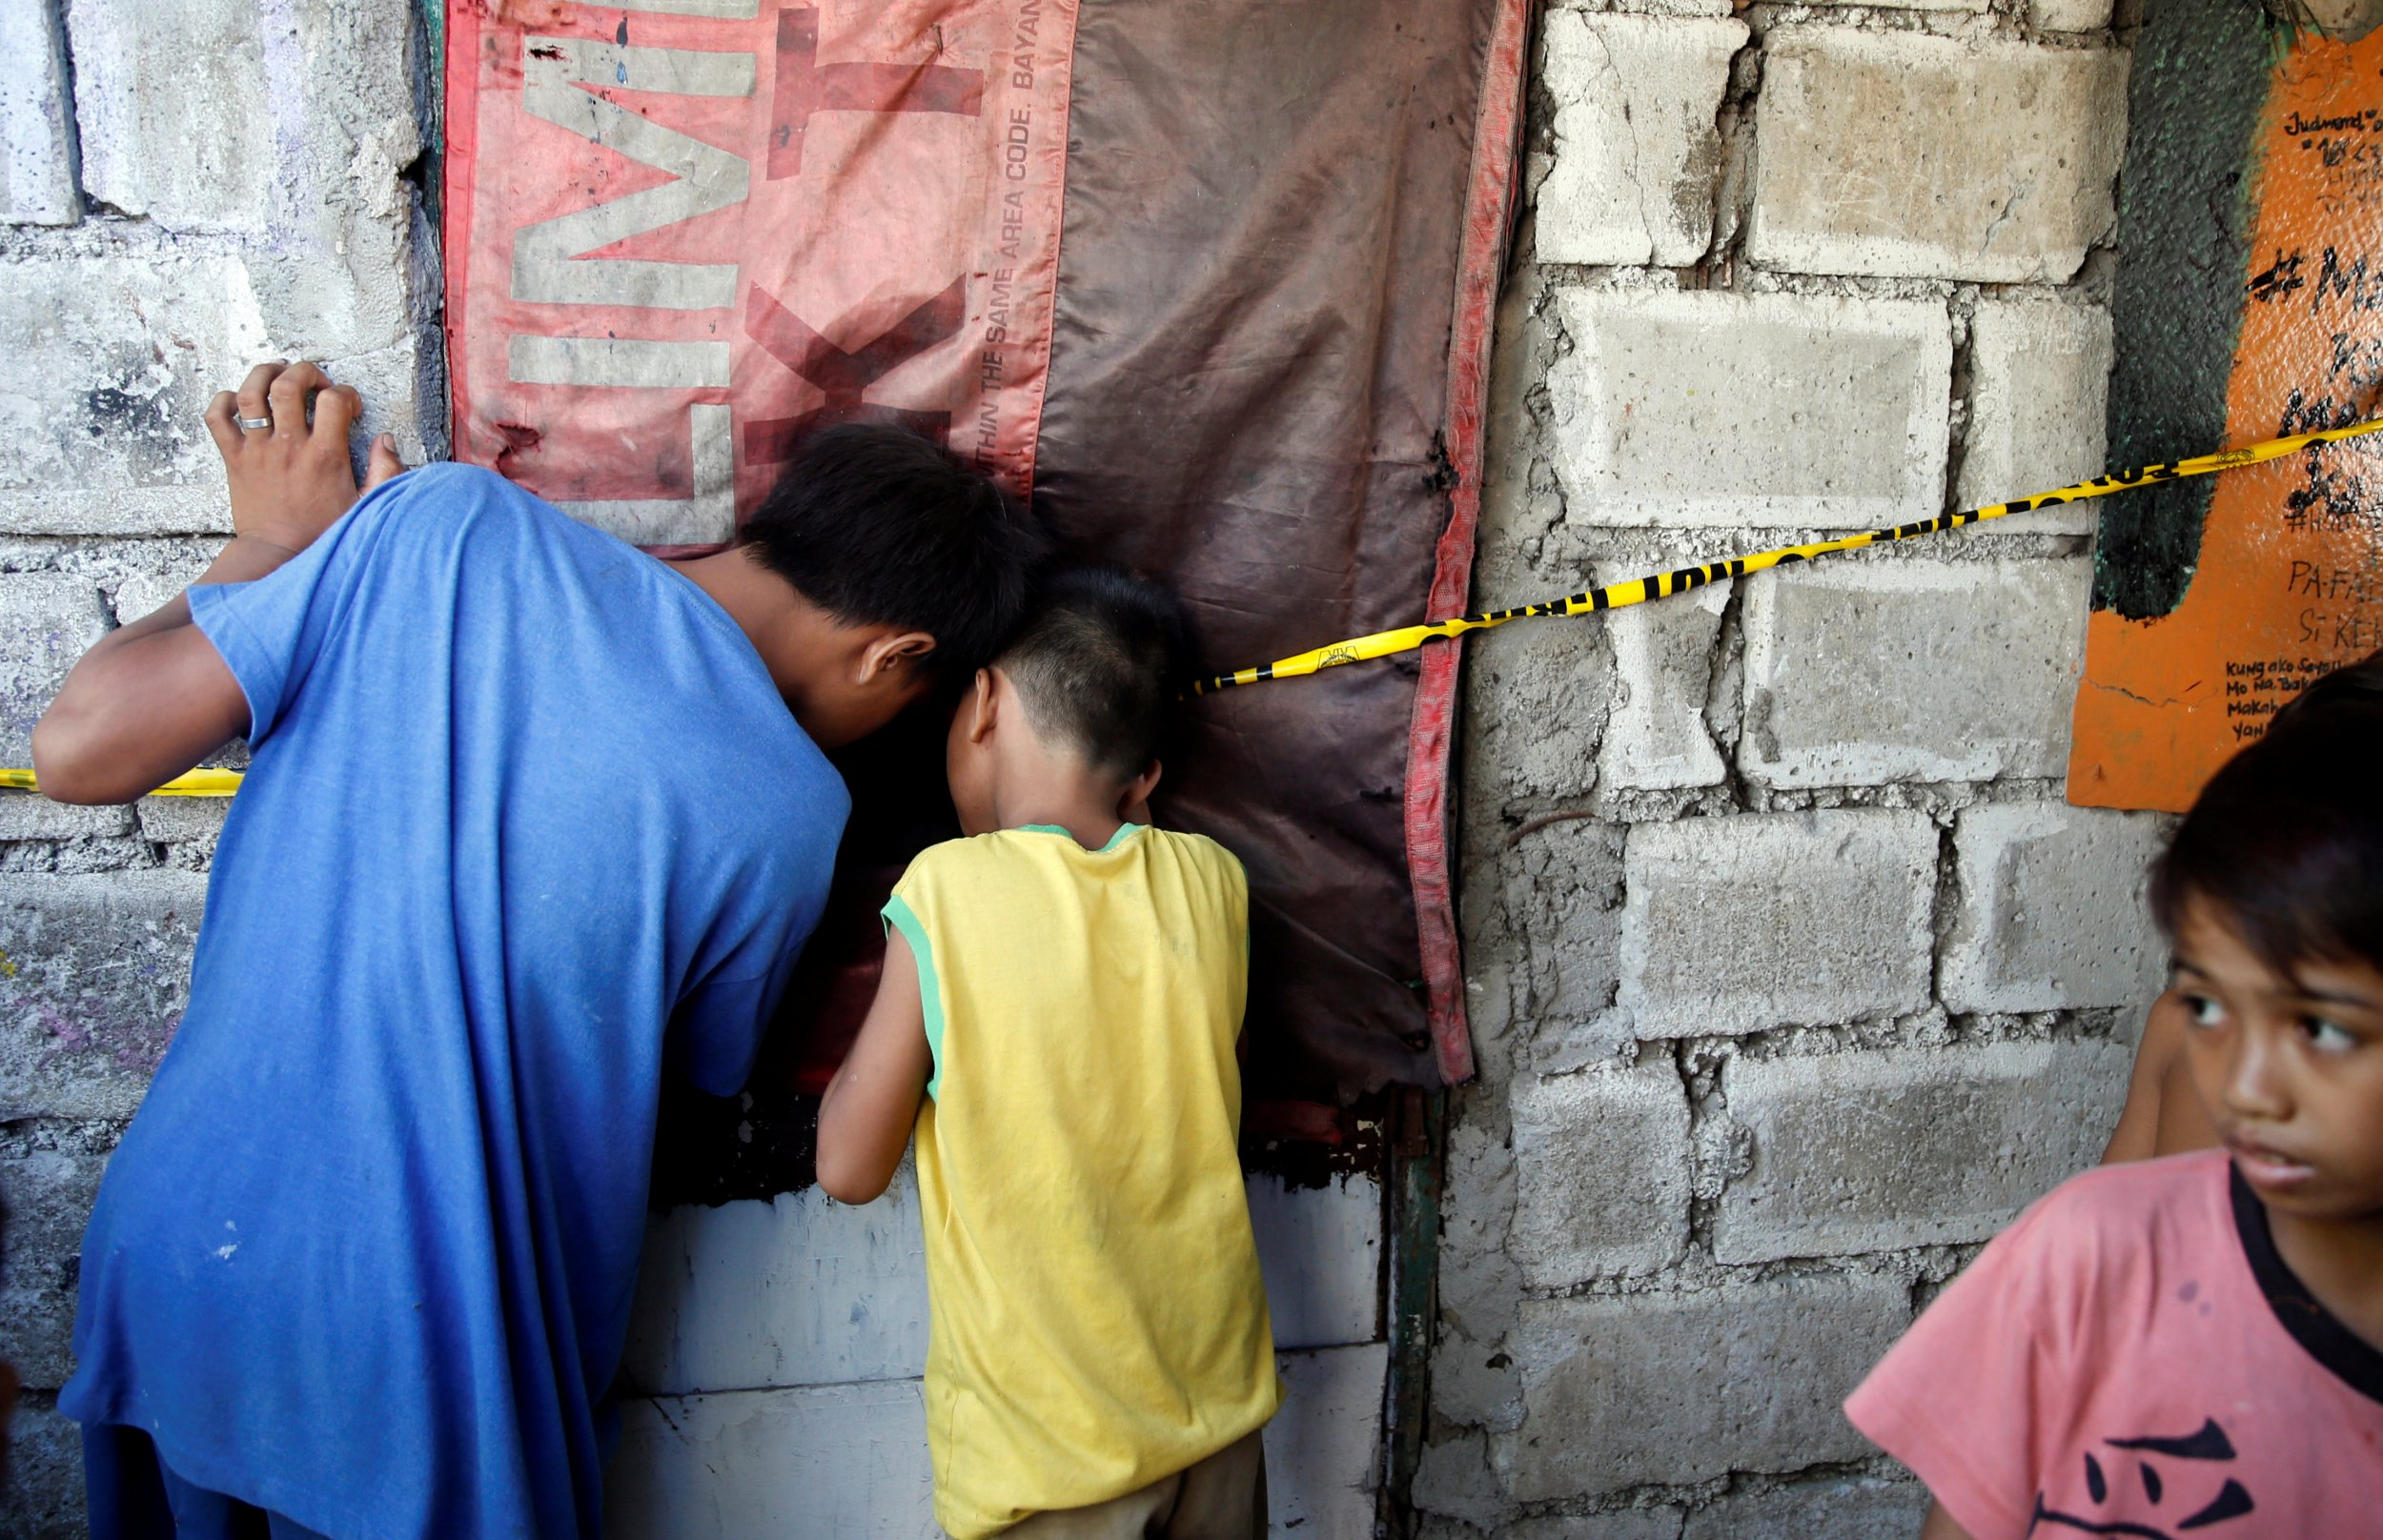 Children look at dead people through hole in drug war